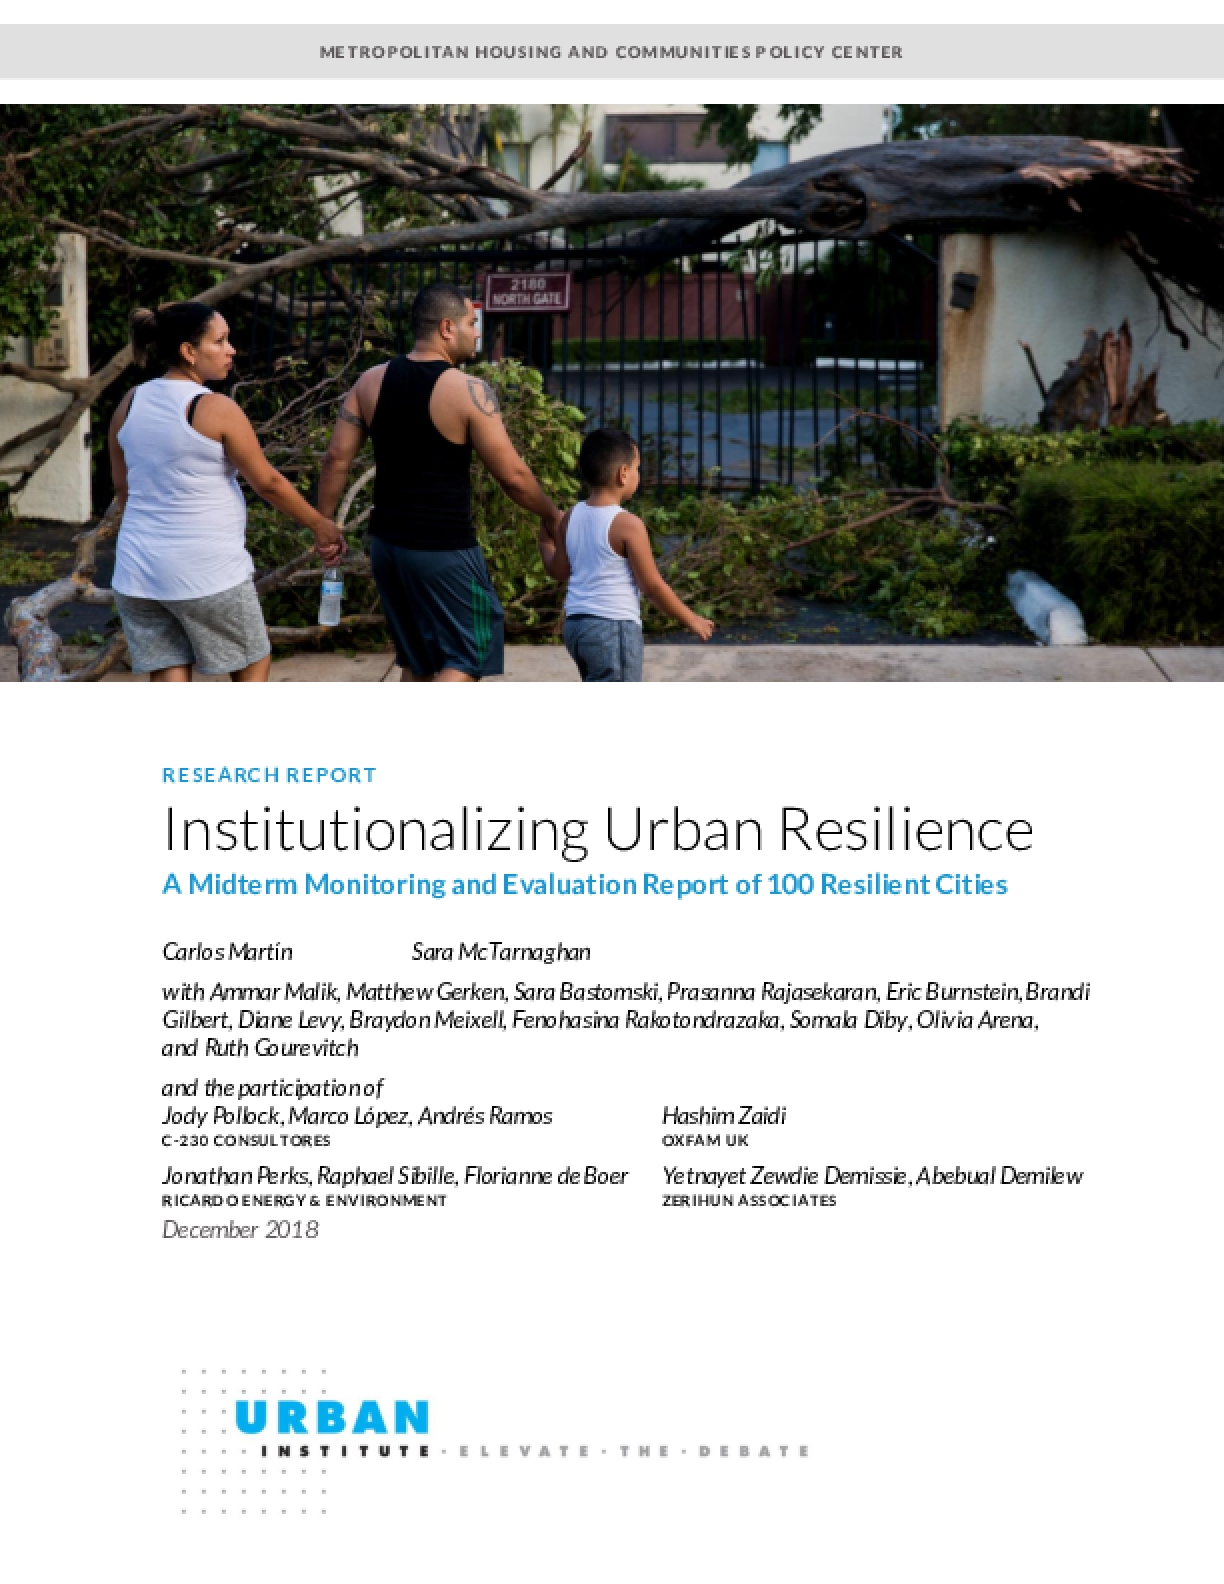 Institutionalizing Urban Resilience: A Midterm Monitoring and Evaluation Report of 100 Resilient Cities